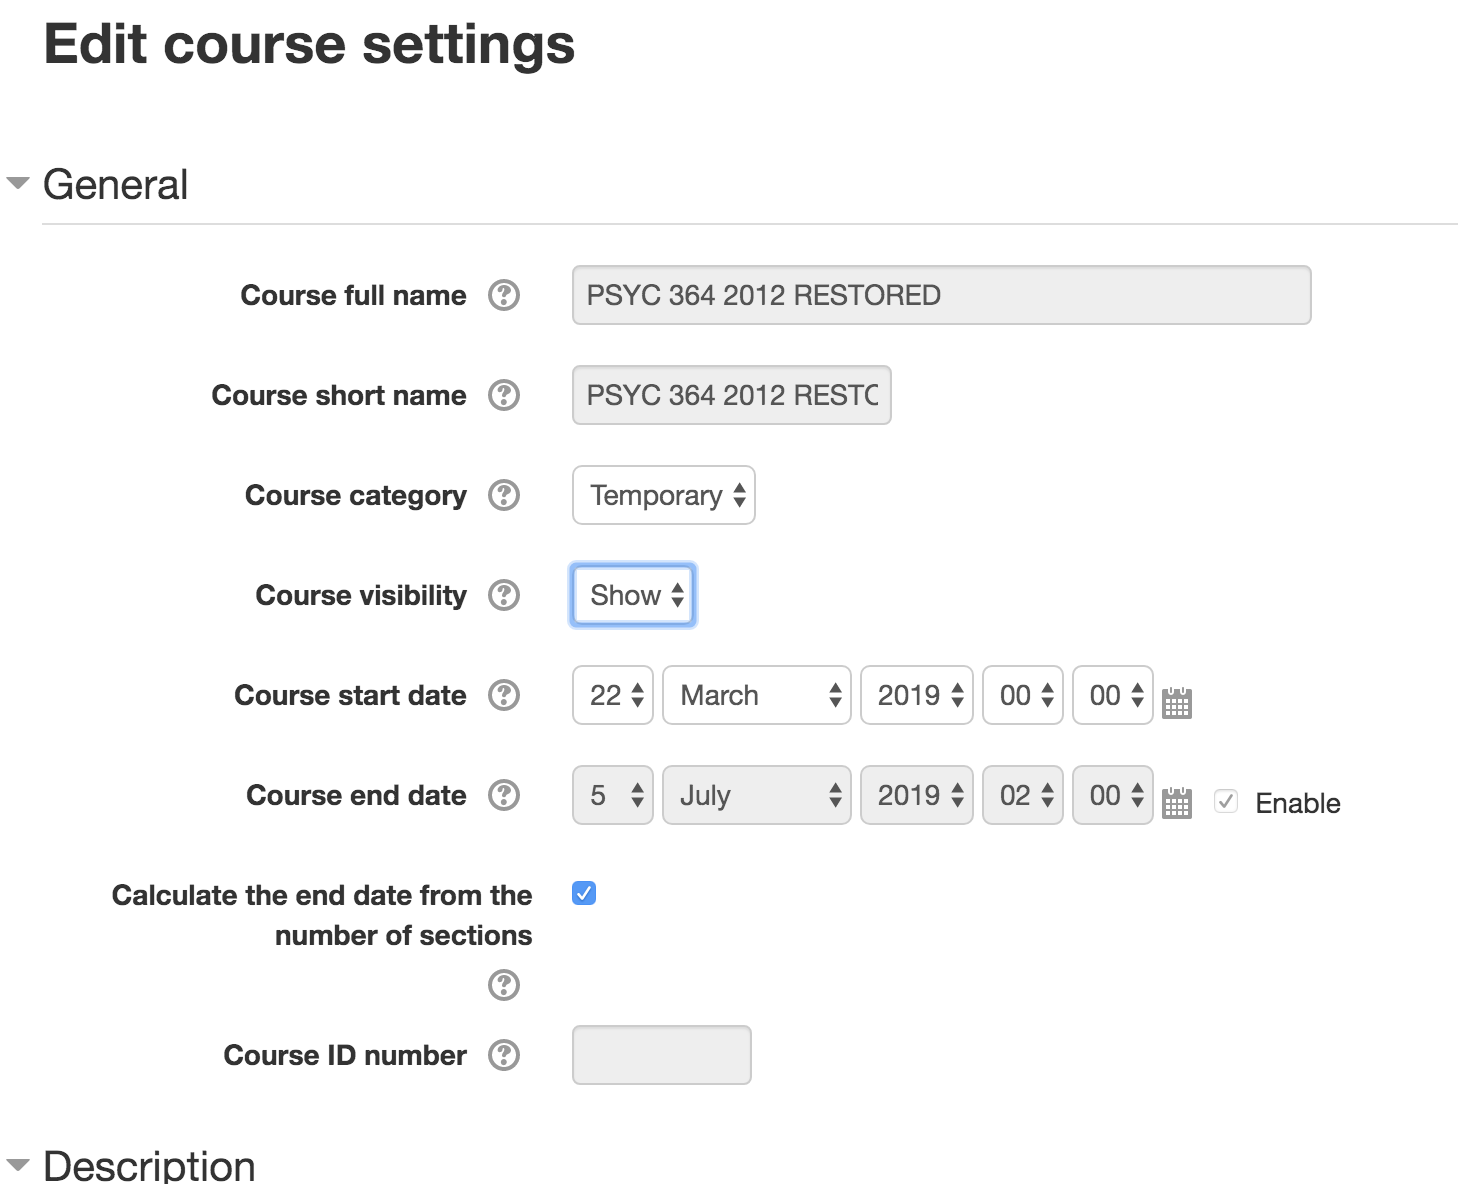 Moodle Edit Course Settings